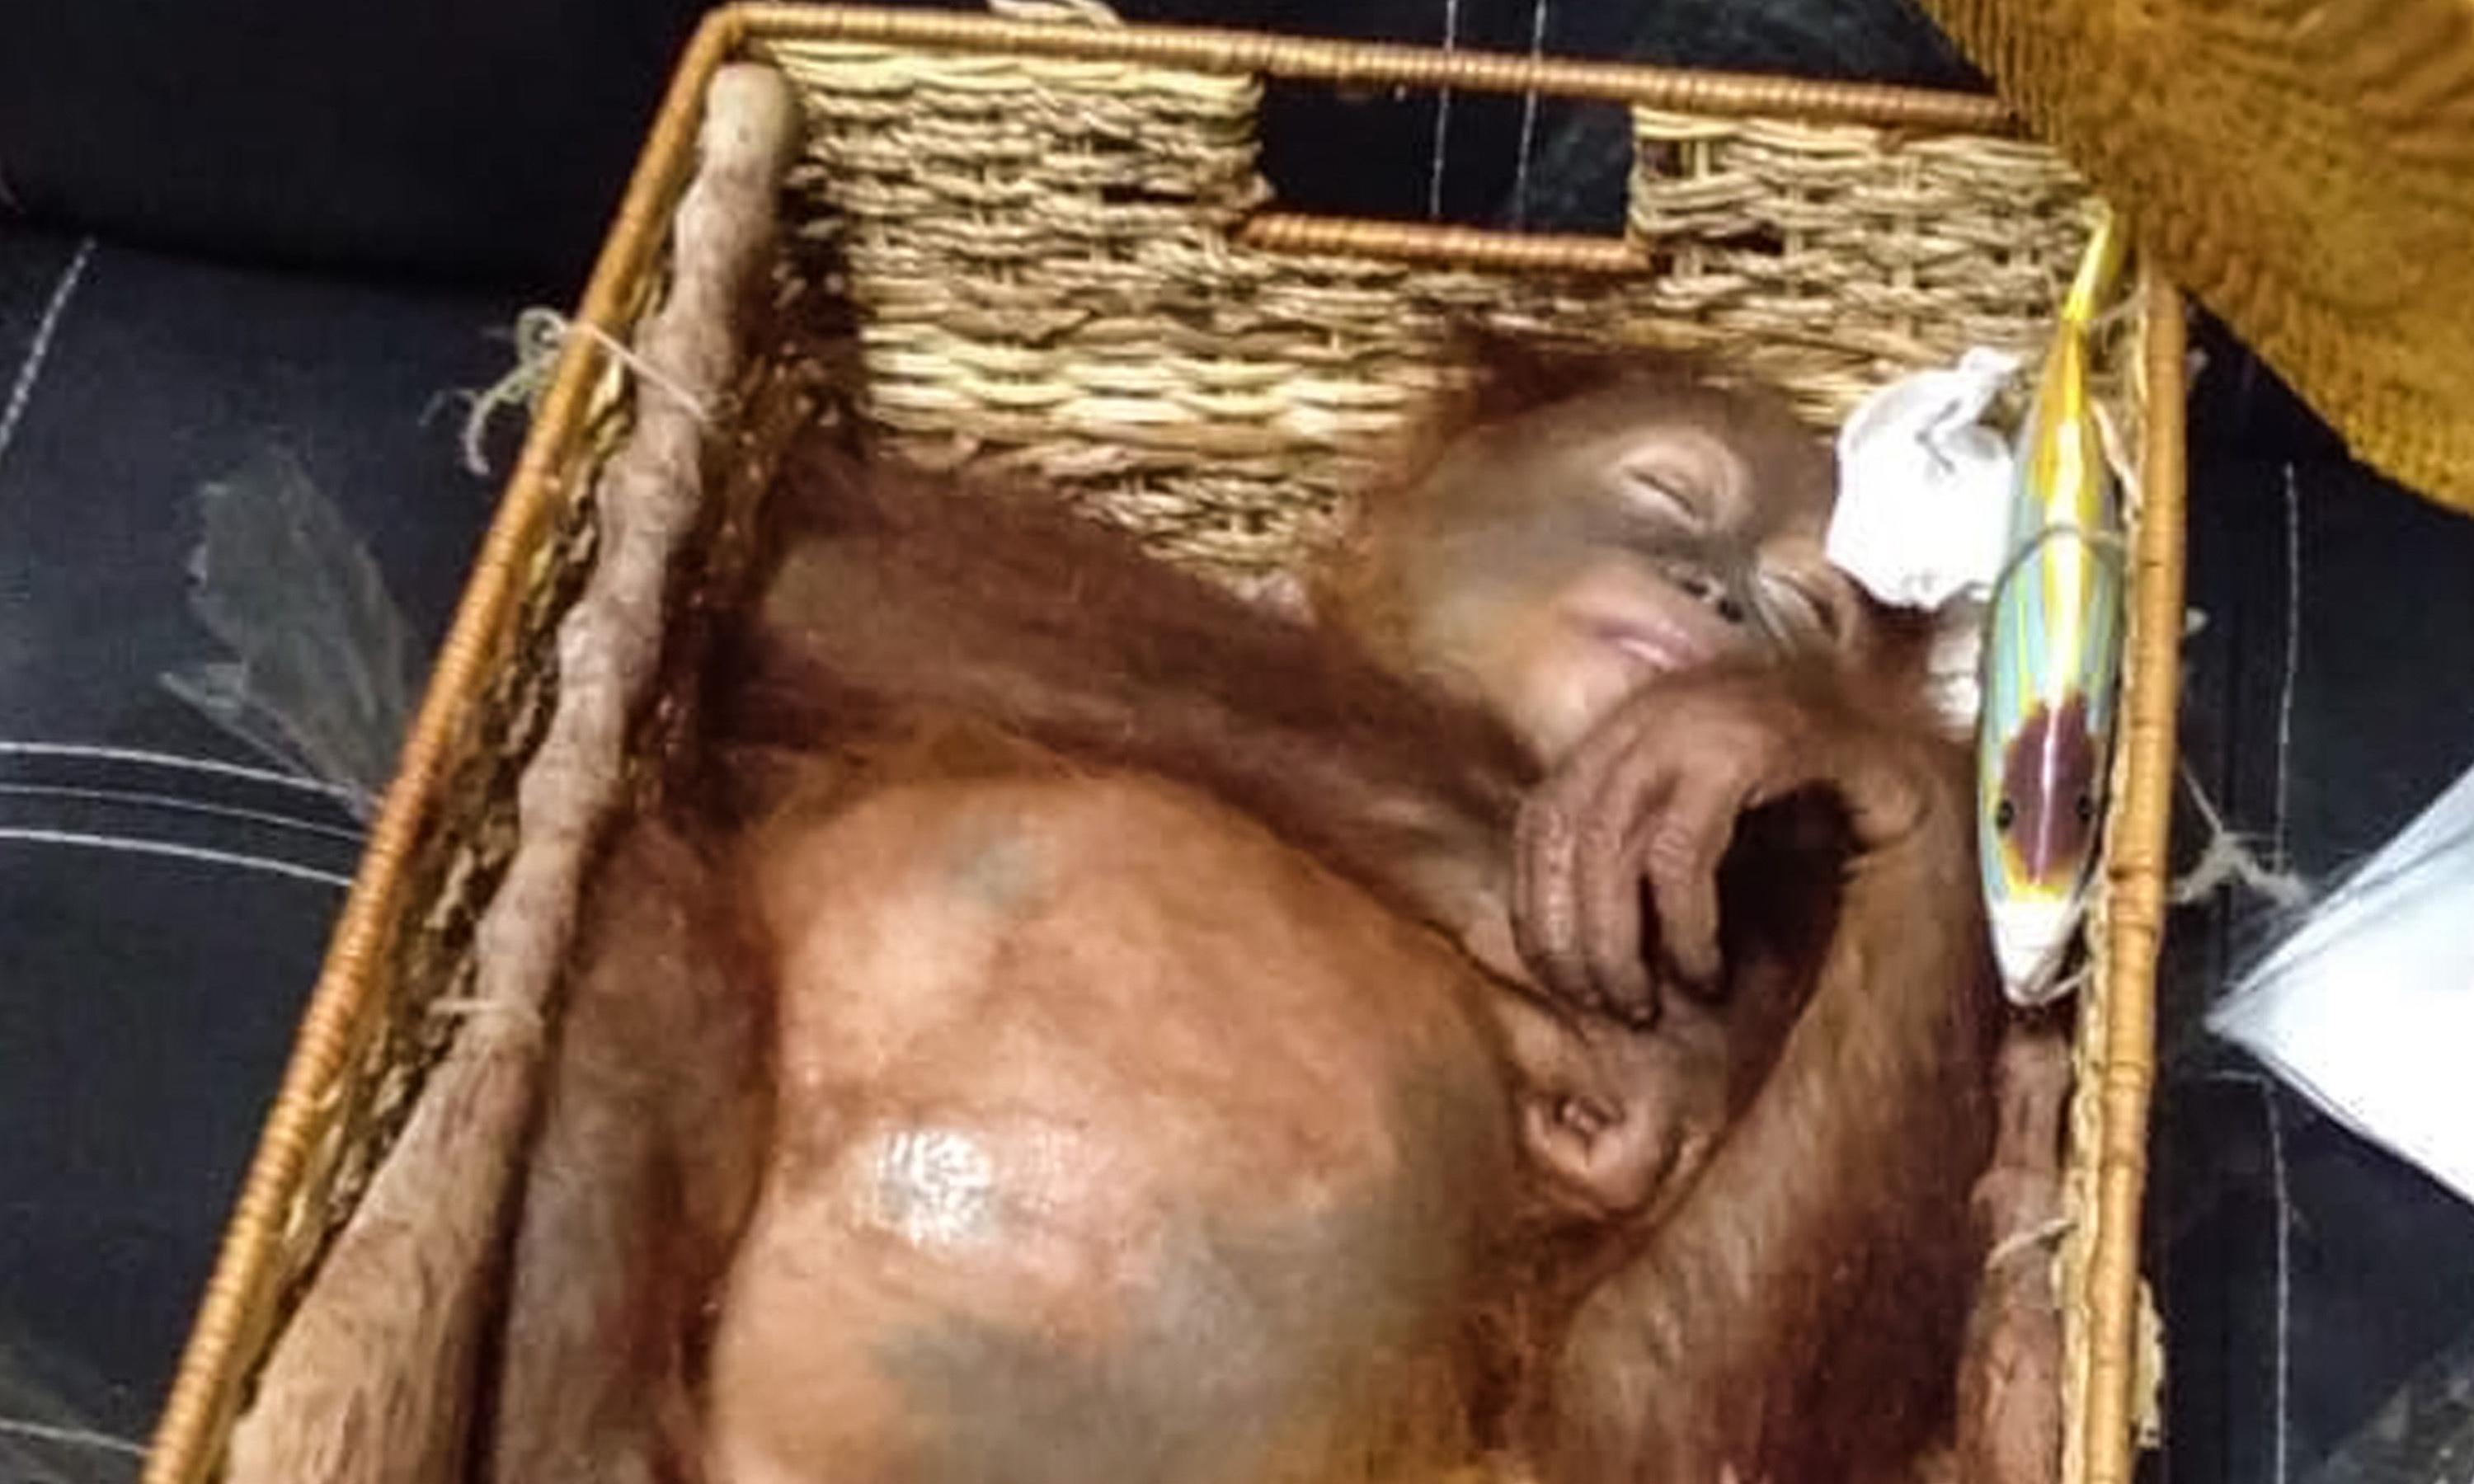 Drugged orangutan found in Russian's airline luggage